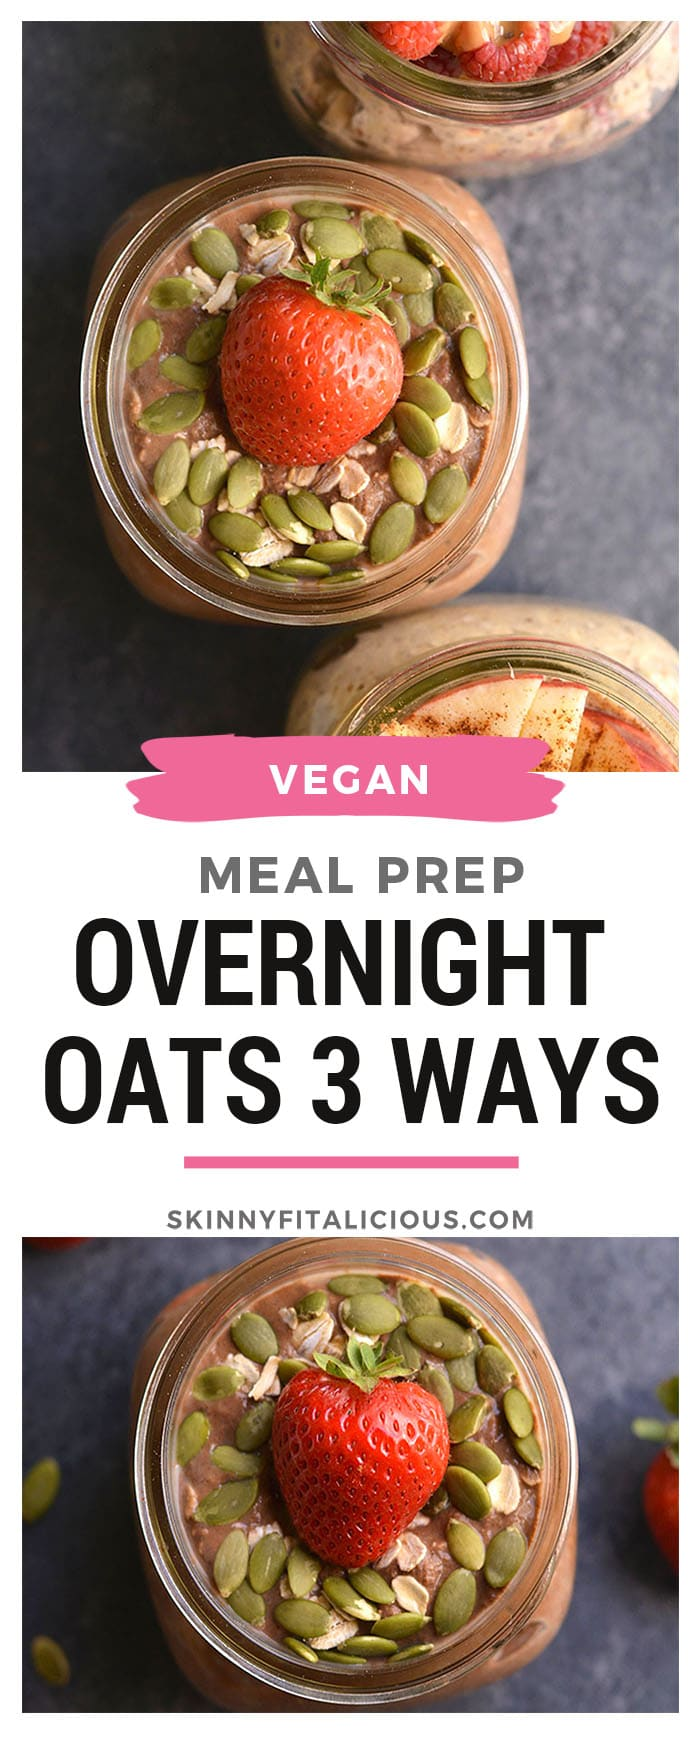 Meal PrepOvernight Oats 3 Ways!Homemade gluten free oats, made free ofartificial ingredients, packed with protein, flavor, and EASY to make! Eat them as instant oatmeal or overnight oats. Gluten Free + Low Calorie + Vegan